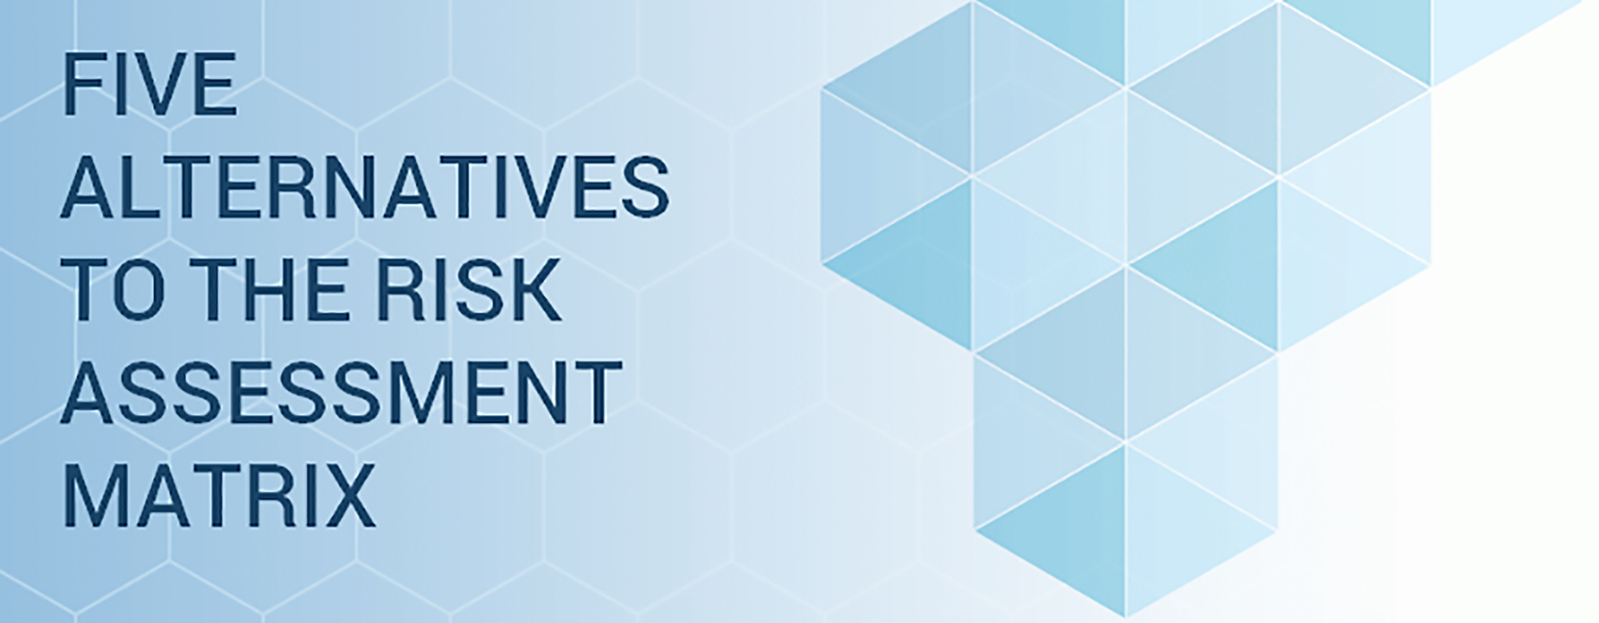 5 Alternatives To The Risk Assessment Matrix